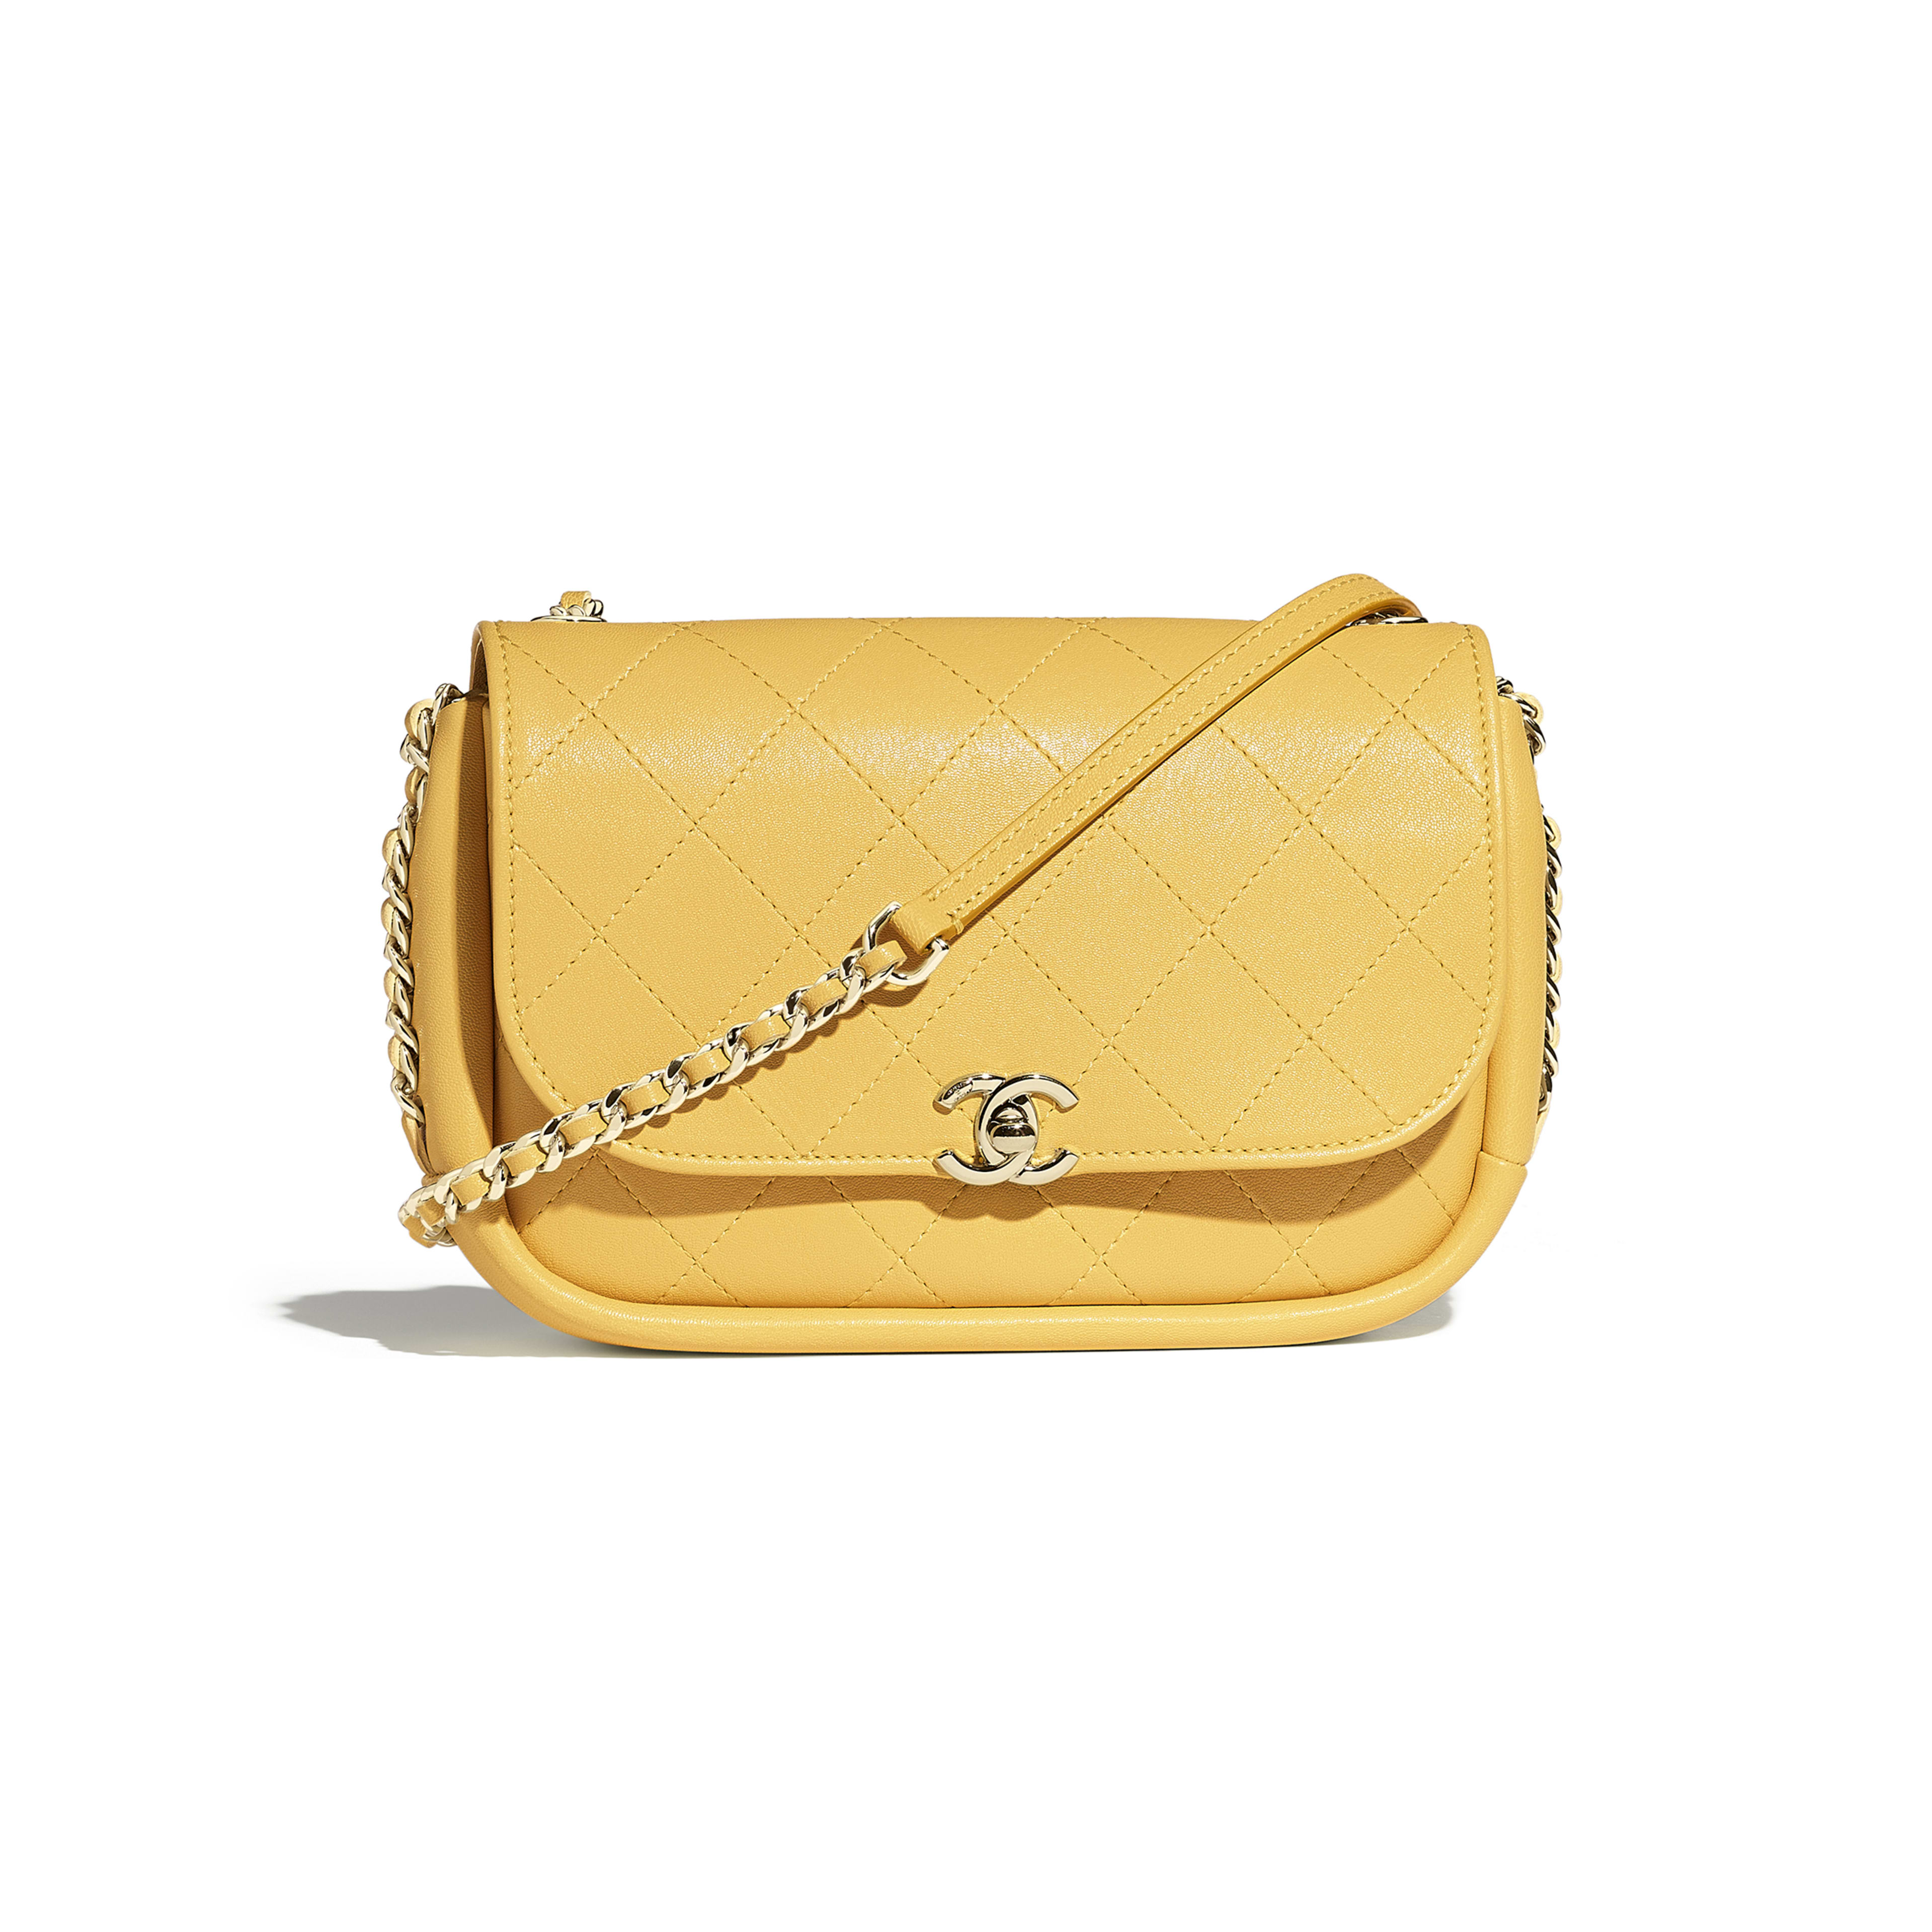 Flap Bag - Yellow - Lambskin & Gold-Tone Metal - Default view - see full sized version